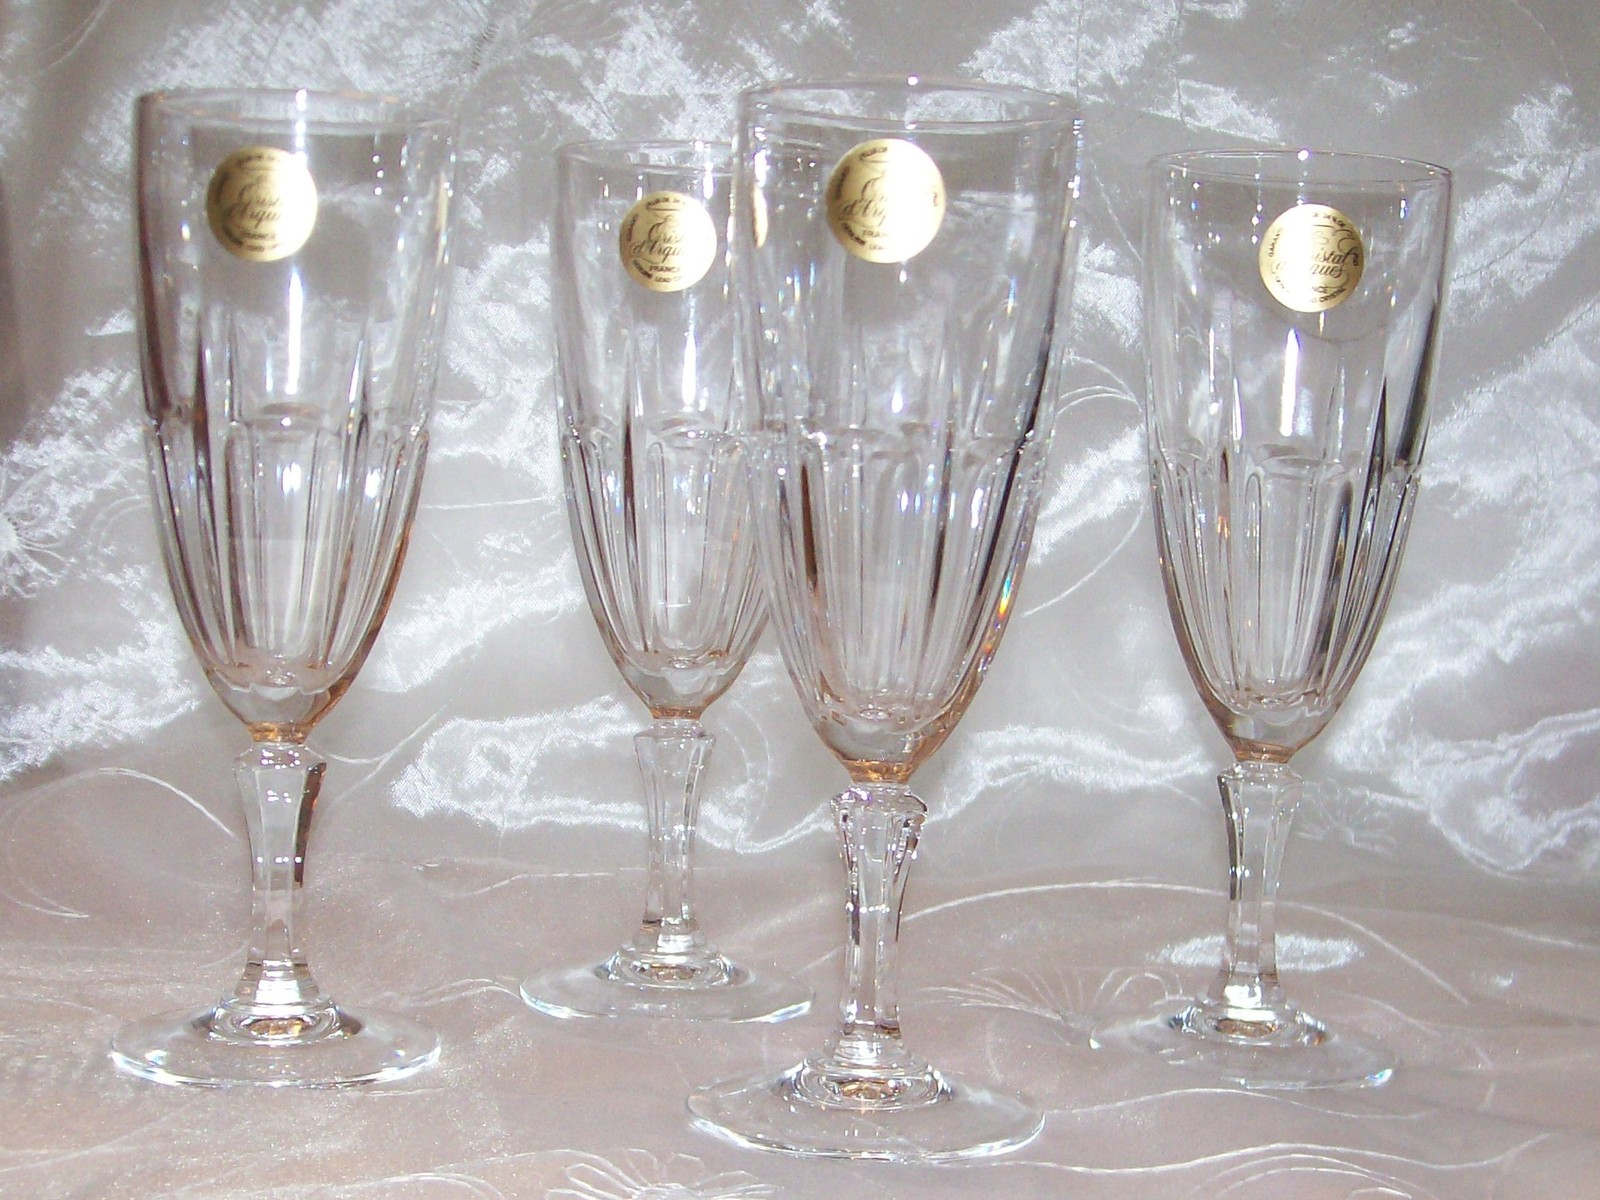 cristal d 39 arques stemware bergamo champagne flutes glass set 4 france new w tag j g durand. Black Bedroom Furniture Sets. Home Design Ideas